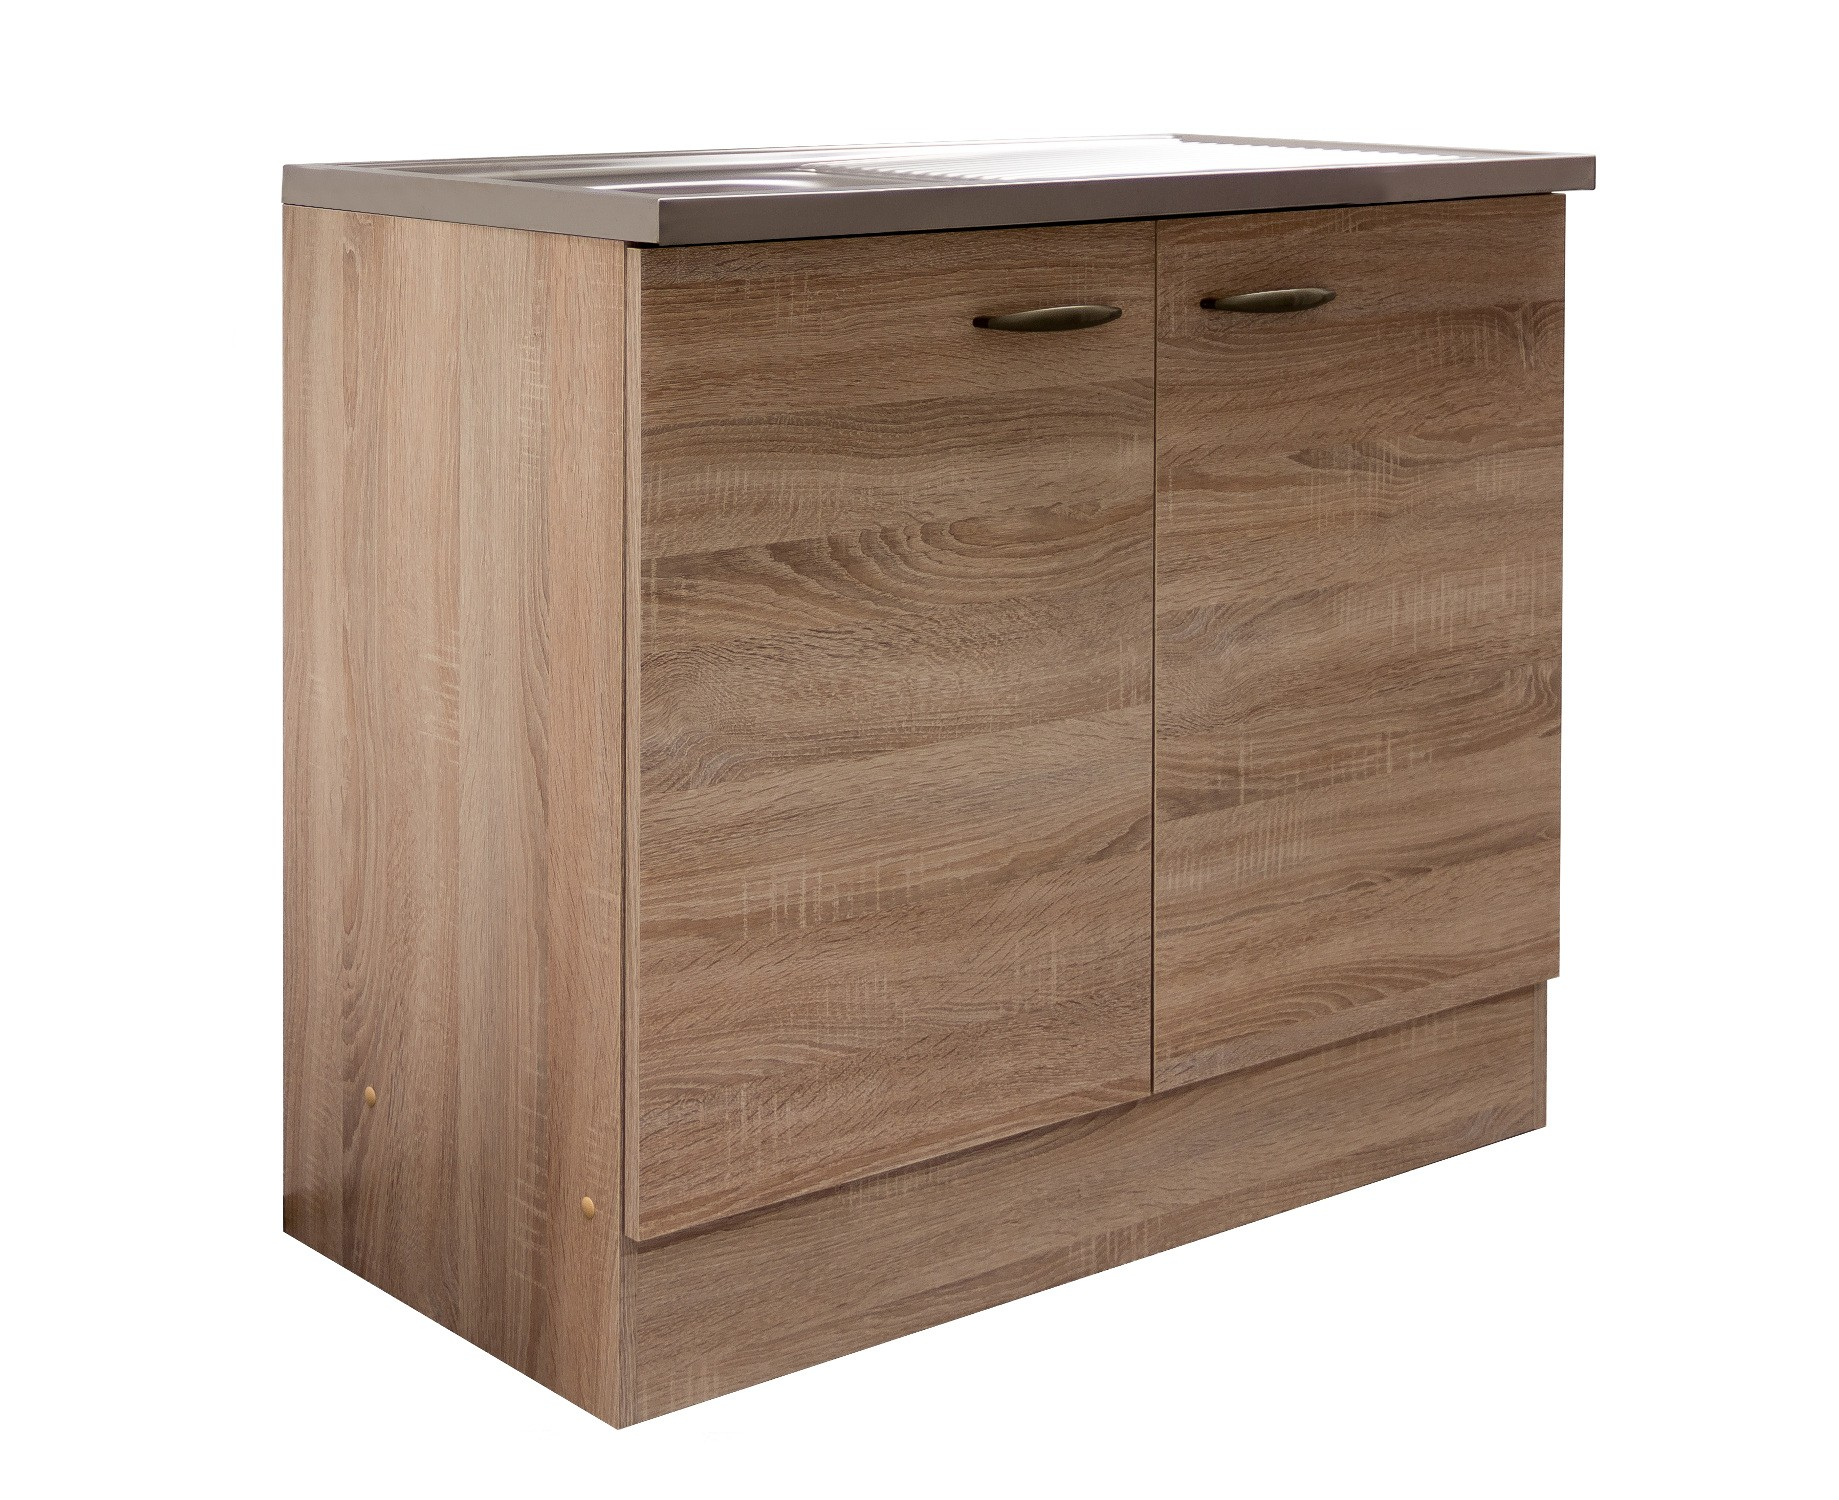 sp lenschrank herne k che sp le sp lschrank 100 cm breit 50 cm tief eiche sonoma ebay. Black Bedroom Furniture Sets. Home Design Ideas